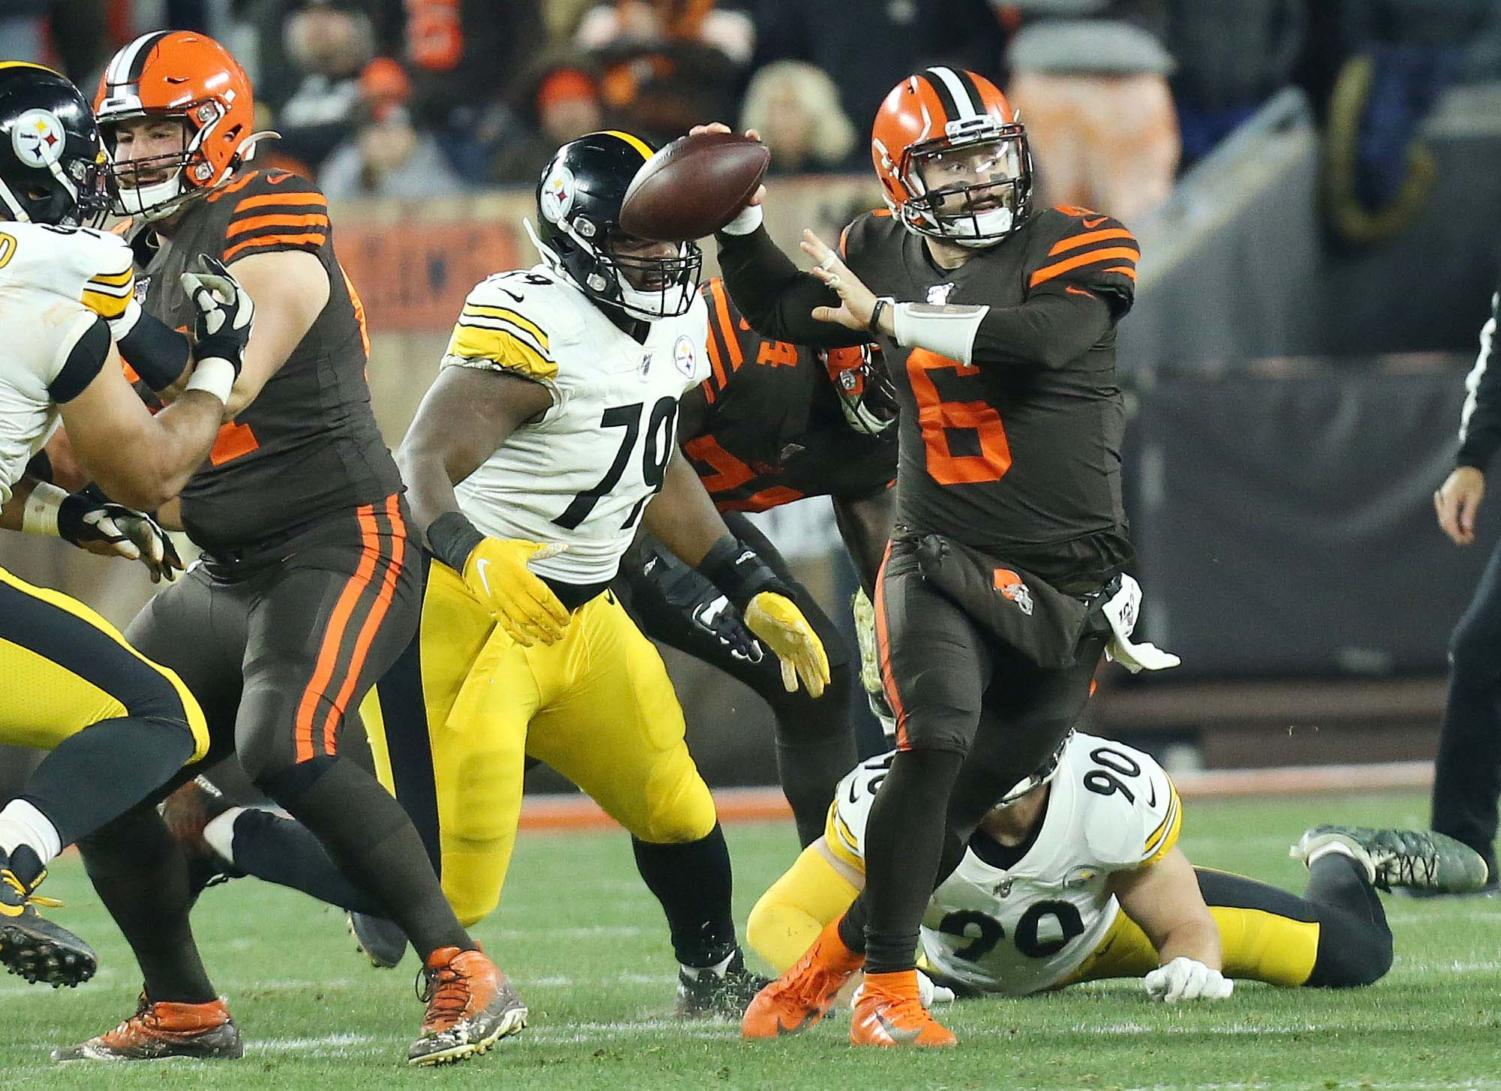 Cleveland Browns quarterback Baker Mayfield scrambles out of the pocket looking for a receiver in the first half, Nov. 14, 2019, at FirstEnergy Stadium.